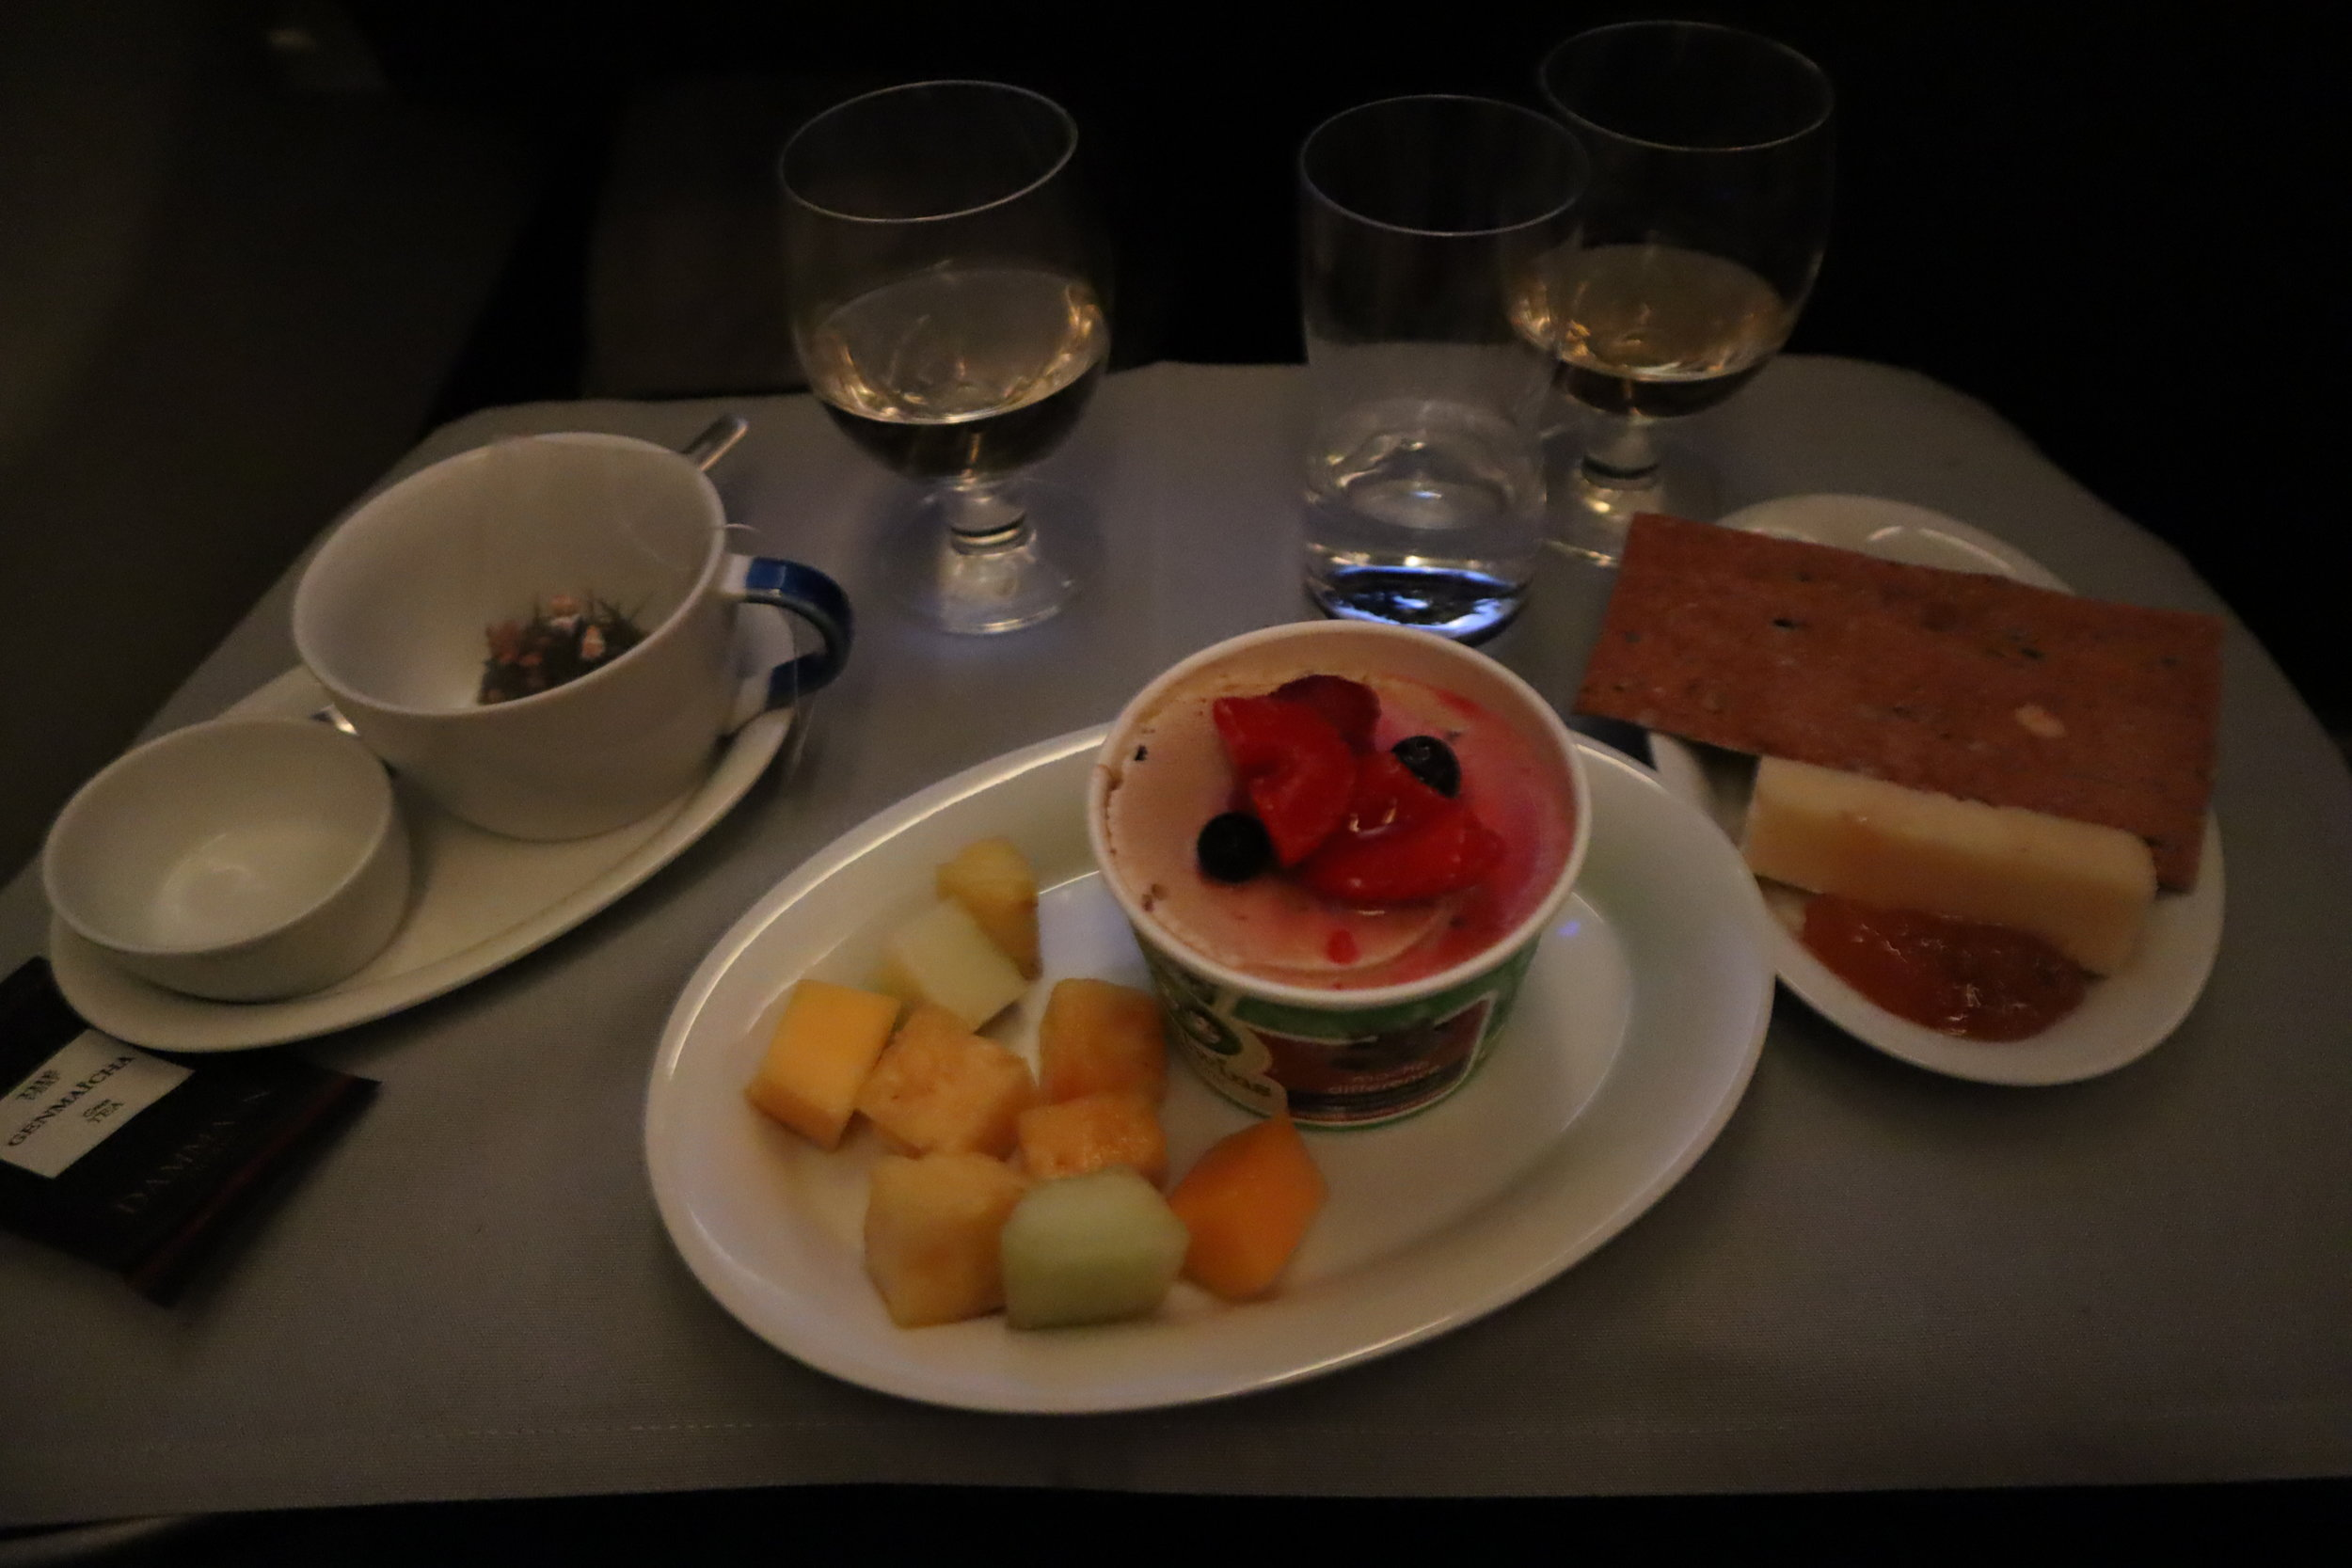 SAS business class – Dessert & cheese course